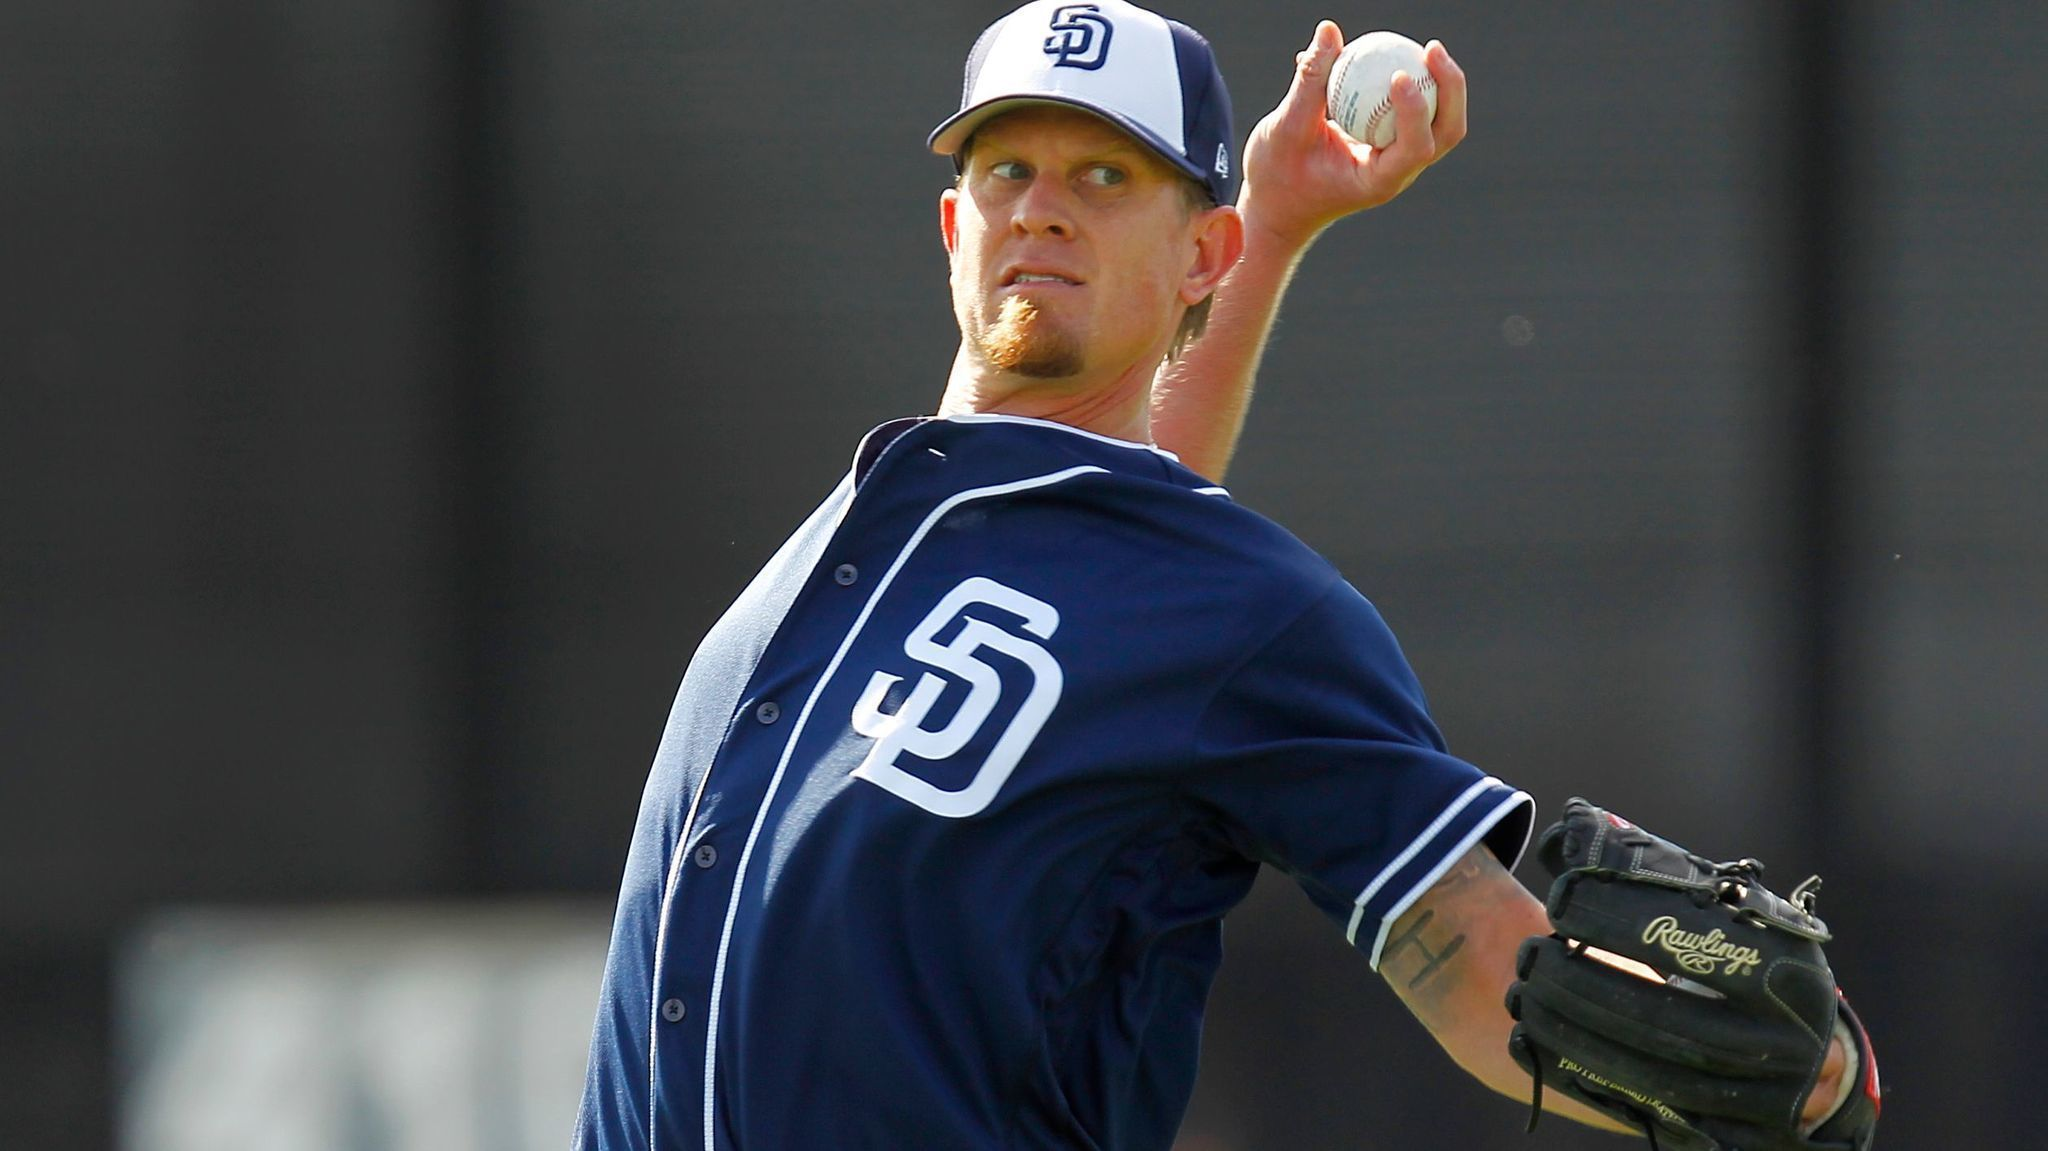 Sd-sp-padres-jered-weaver-20170312